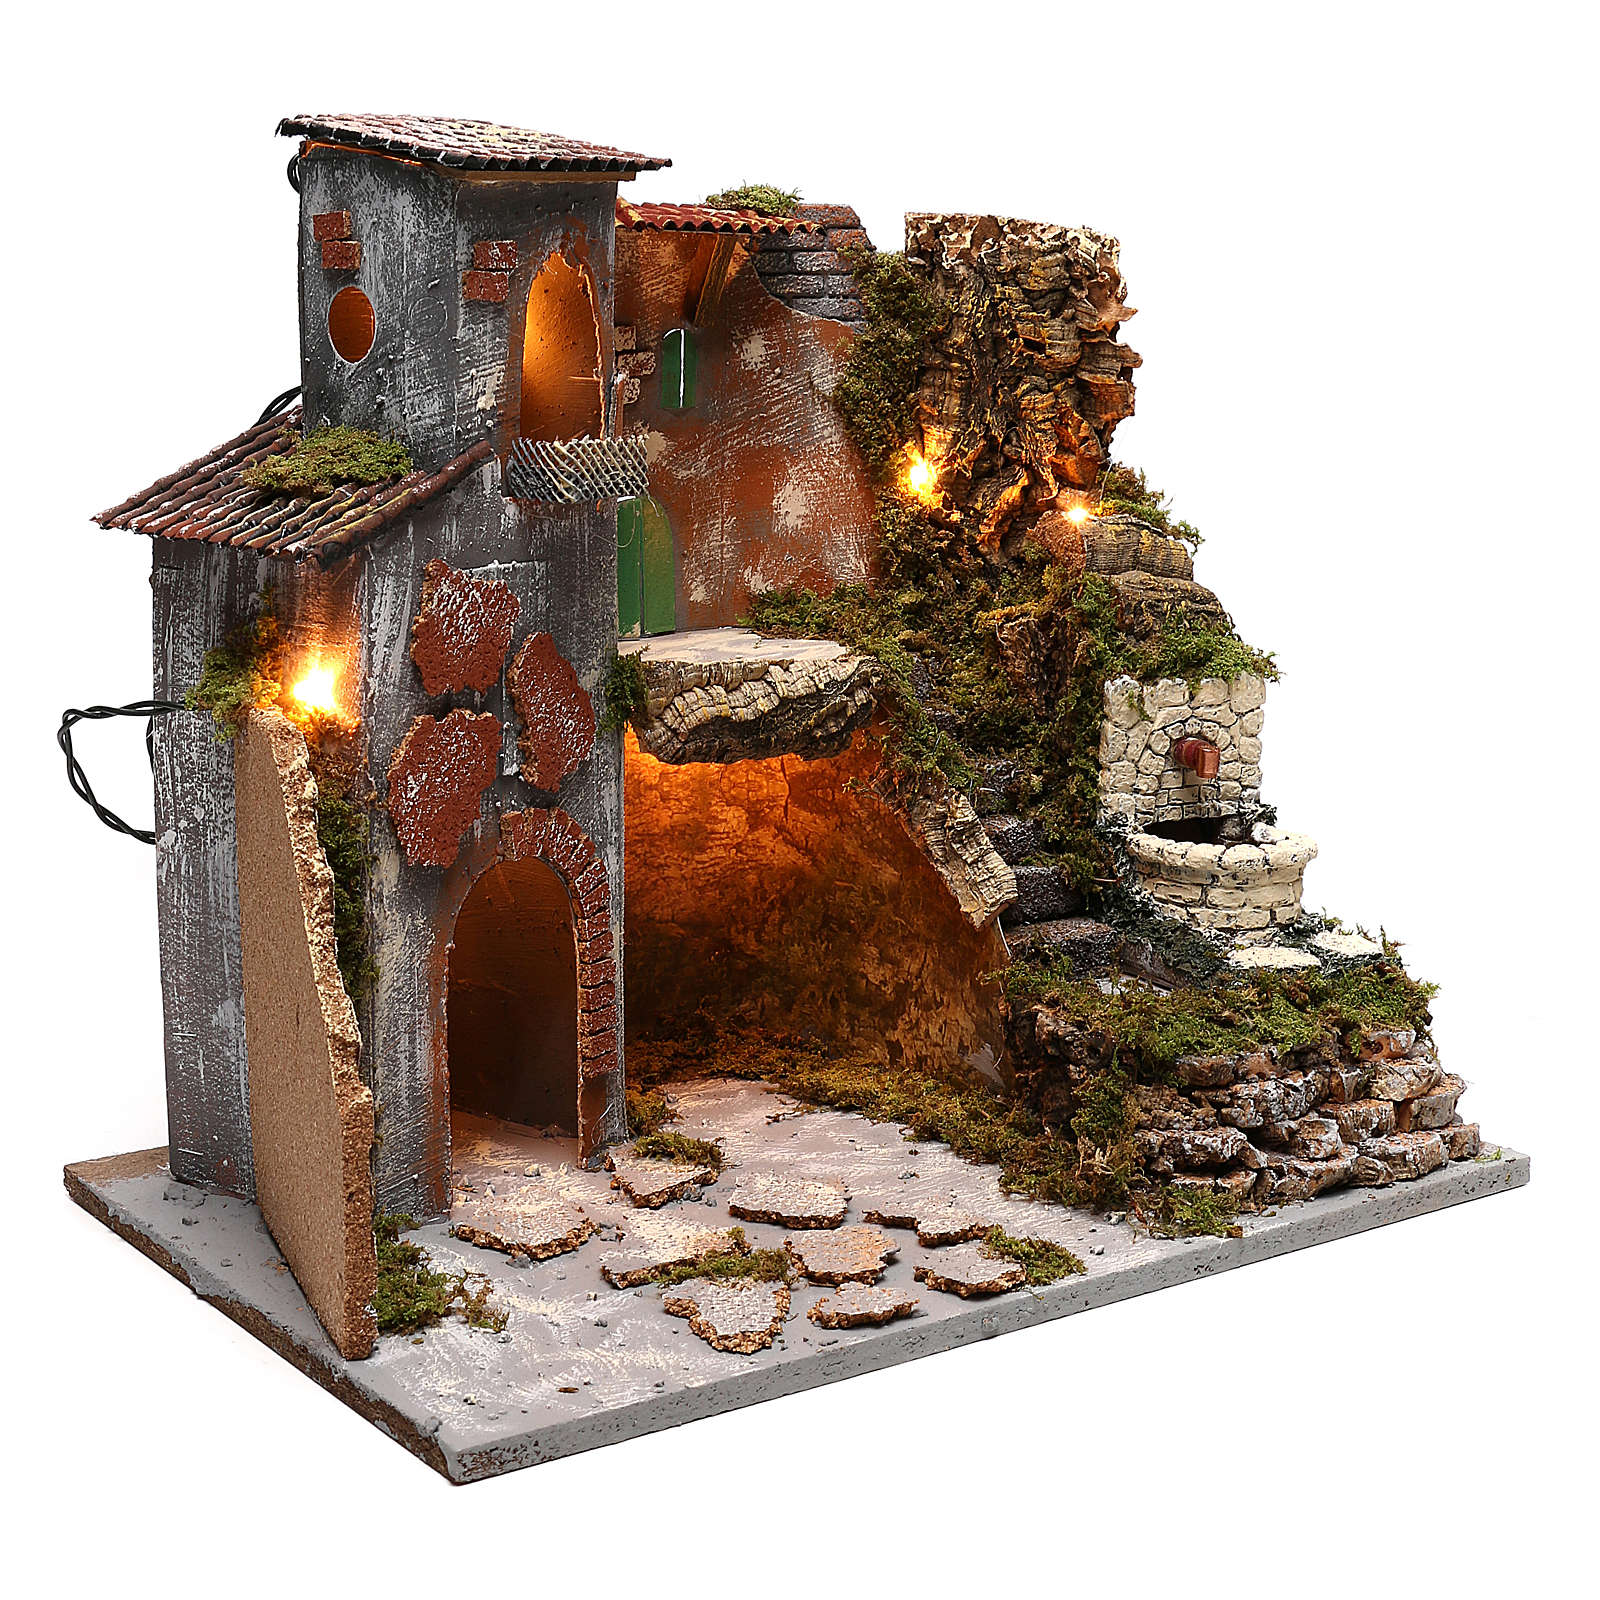 Nativity scene village setting with lights and fountain for 8 cm characters 30x45x40 cm 4